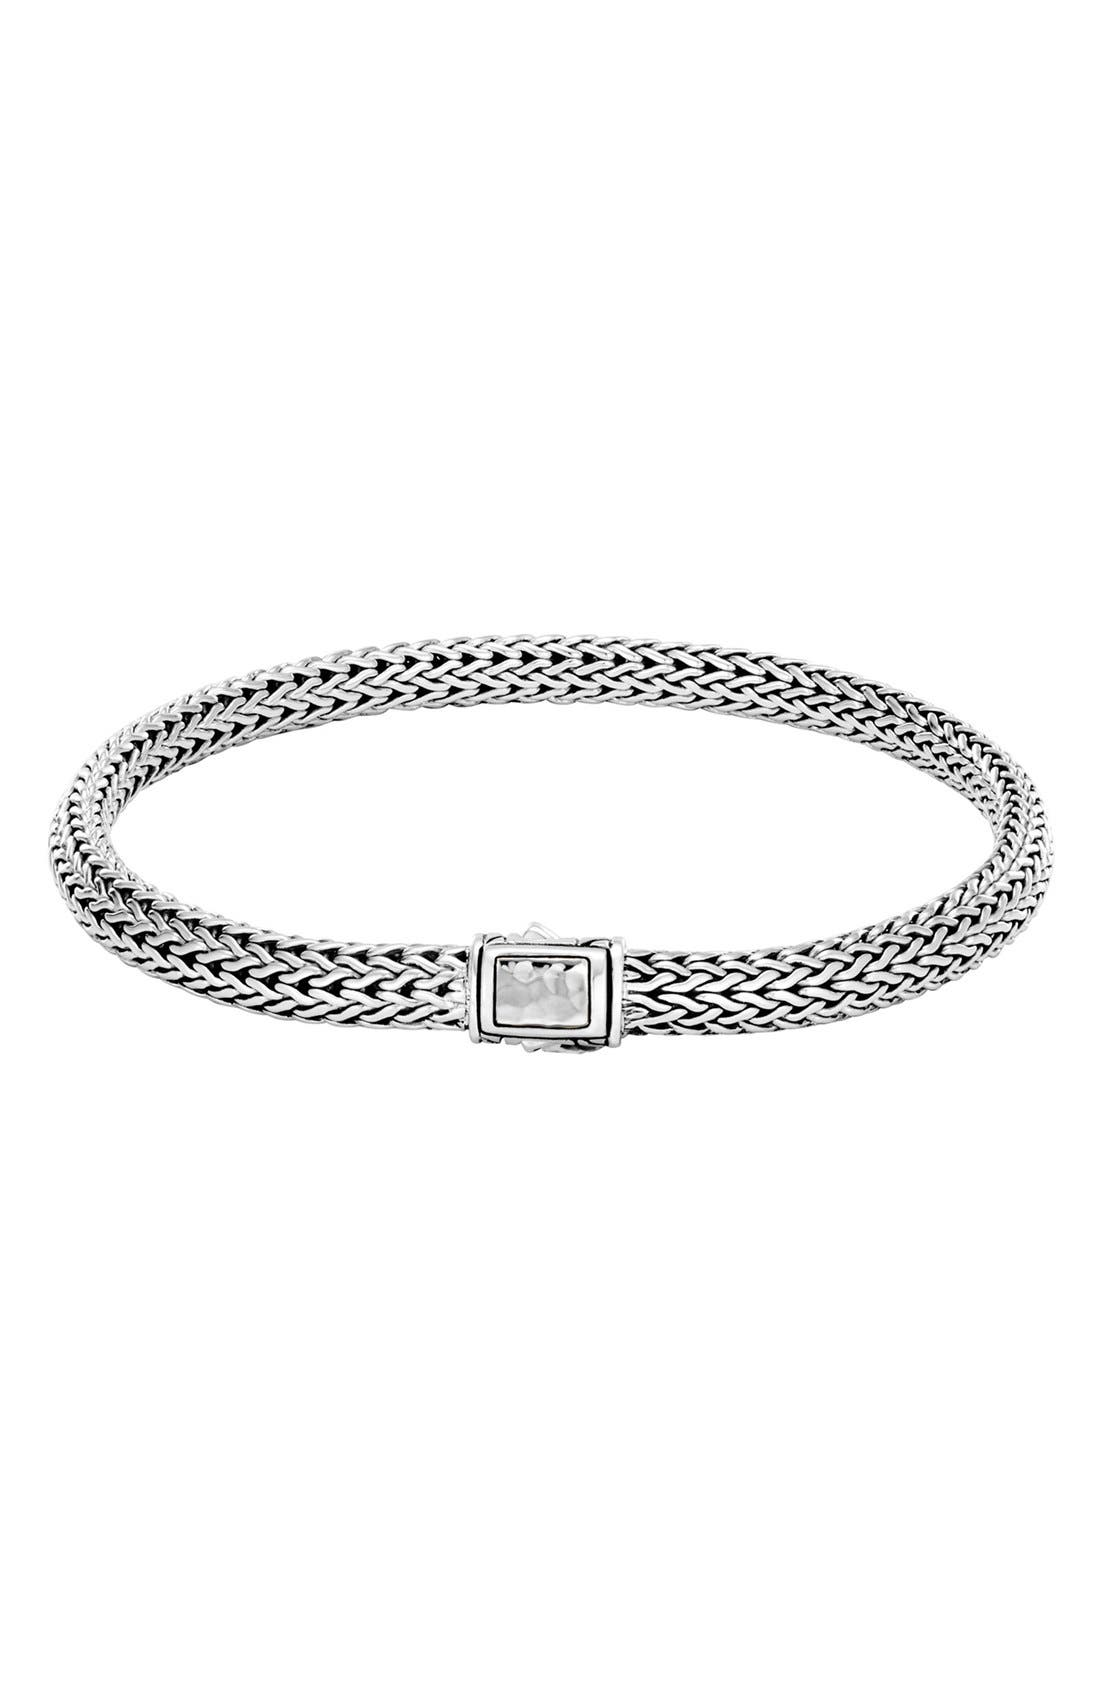 Alternate Image 1 Selected - John Hardy Classic Chain Hammered Clasp Bracelet